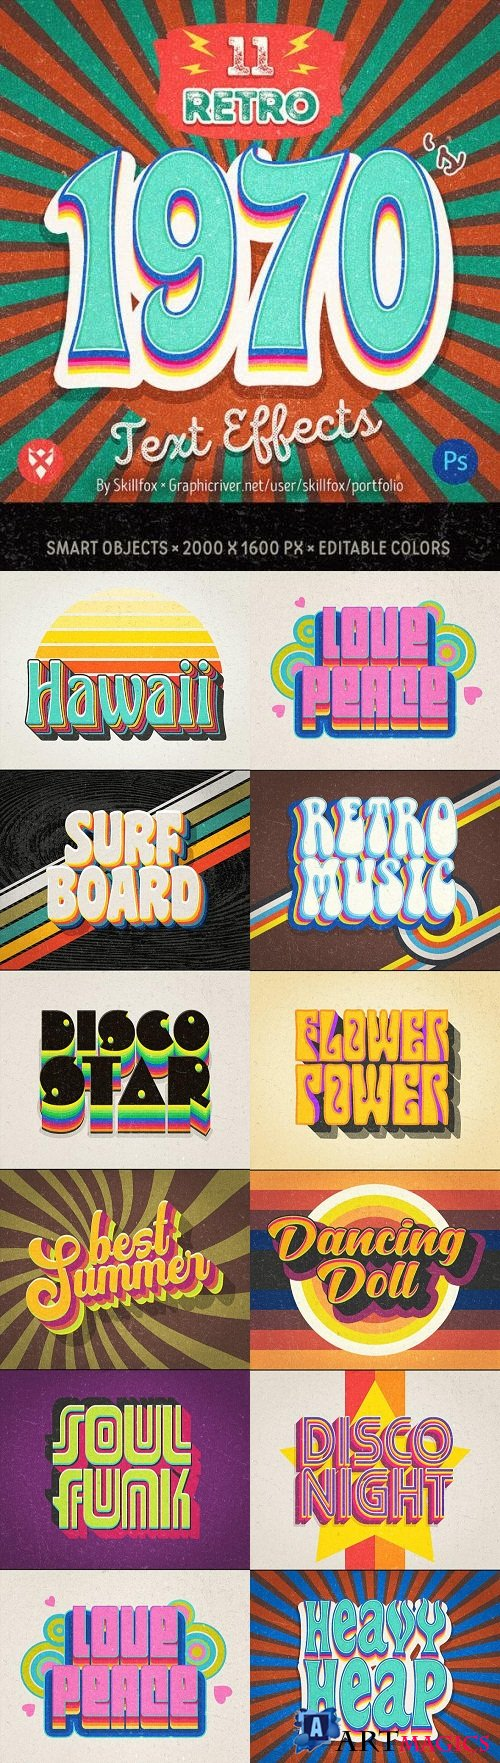 11 70's Retro Text Effects - 23203116